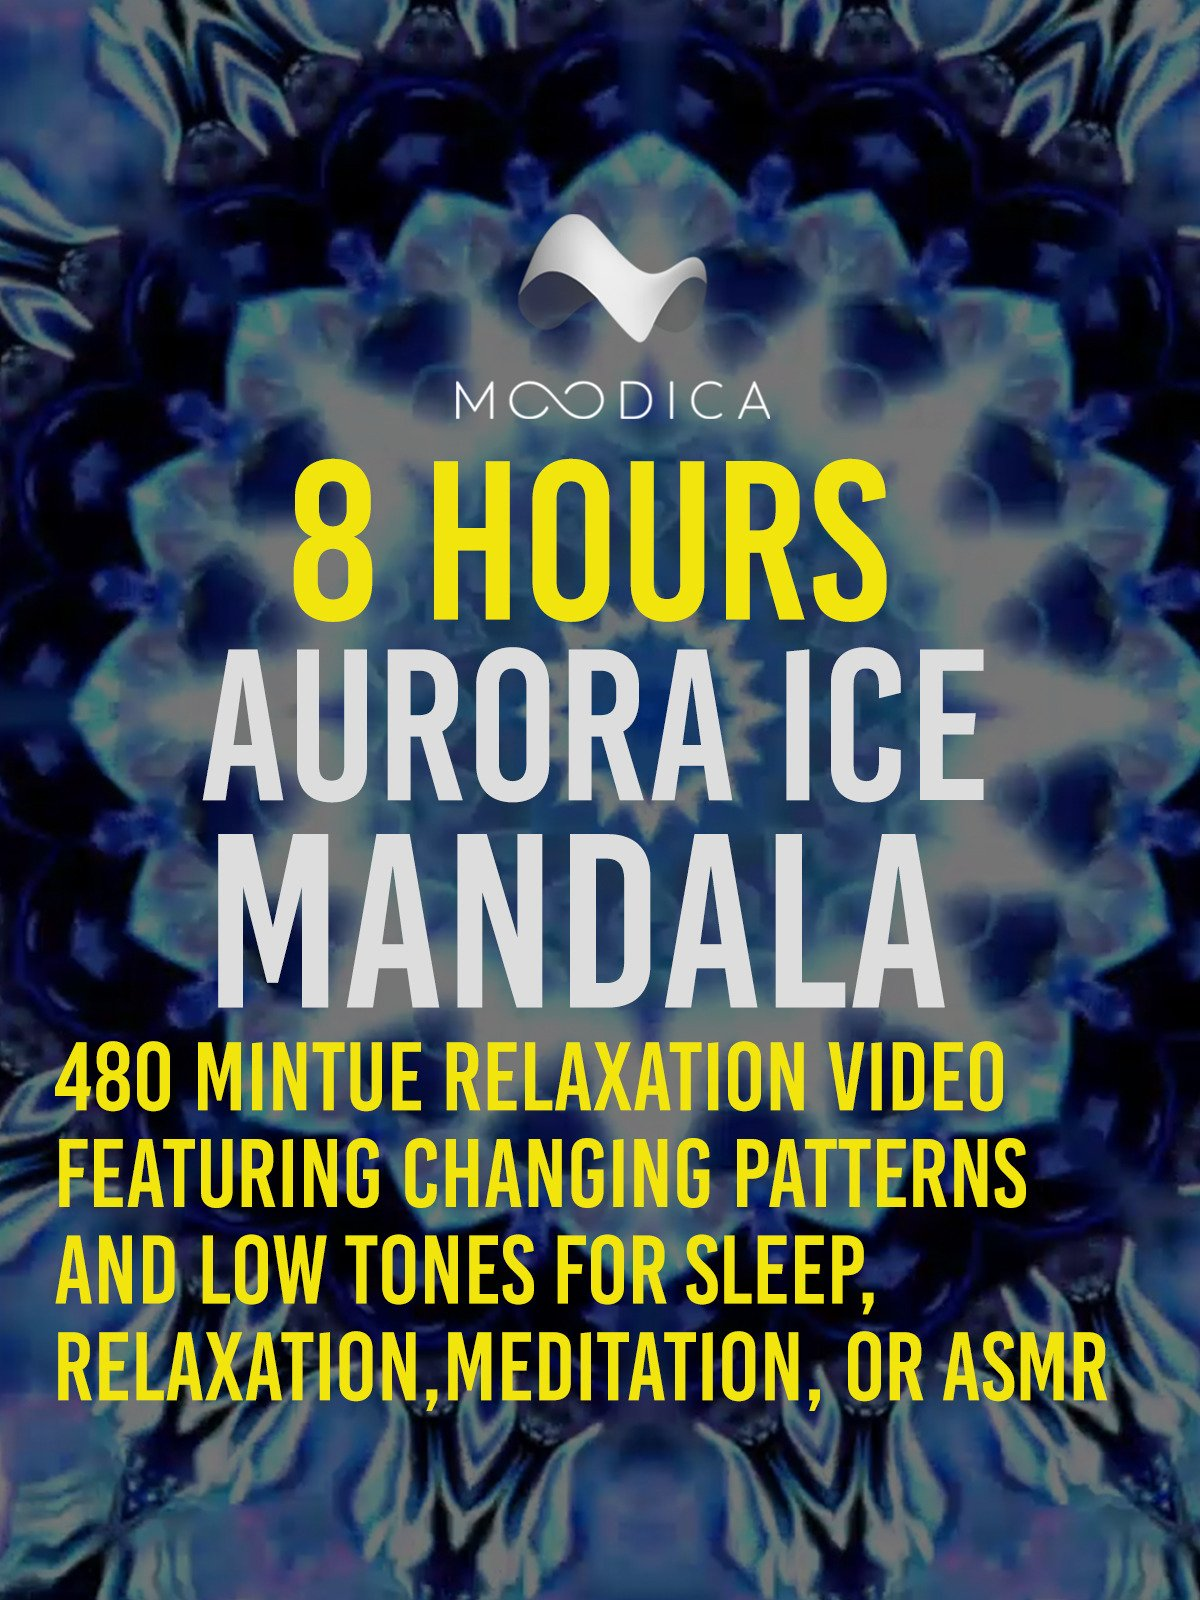 8 Hours: Aurora Ice Mandala: 480 Minute Relaxation Video Featuring Changing Patterns and Low Tones for Sleep, Relaxation, Meditation or ASMR